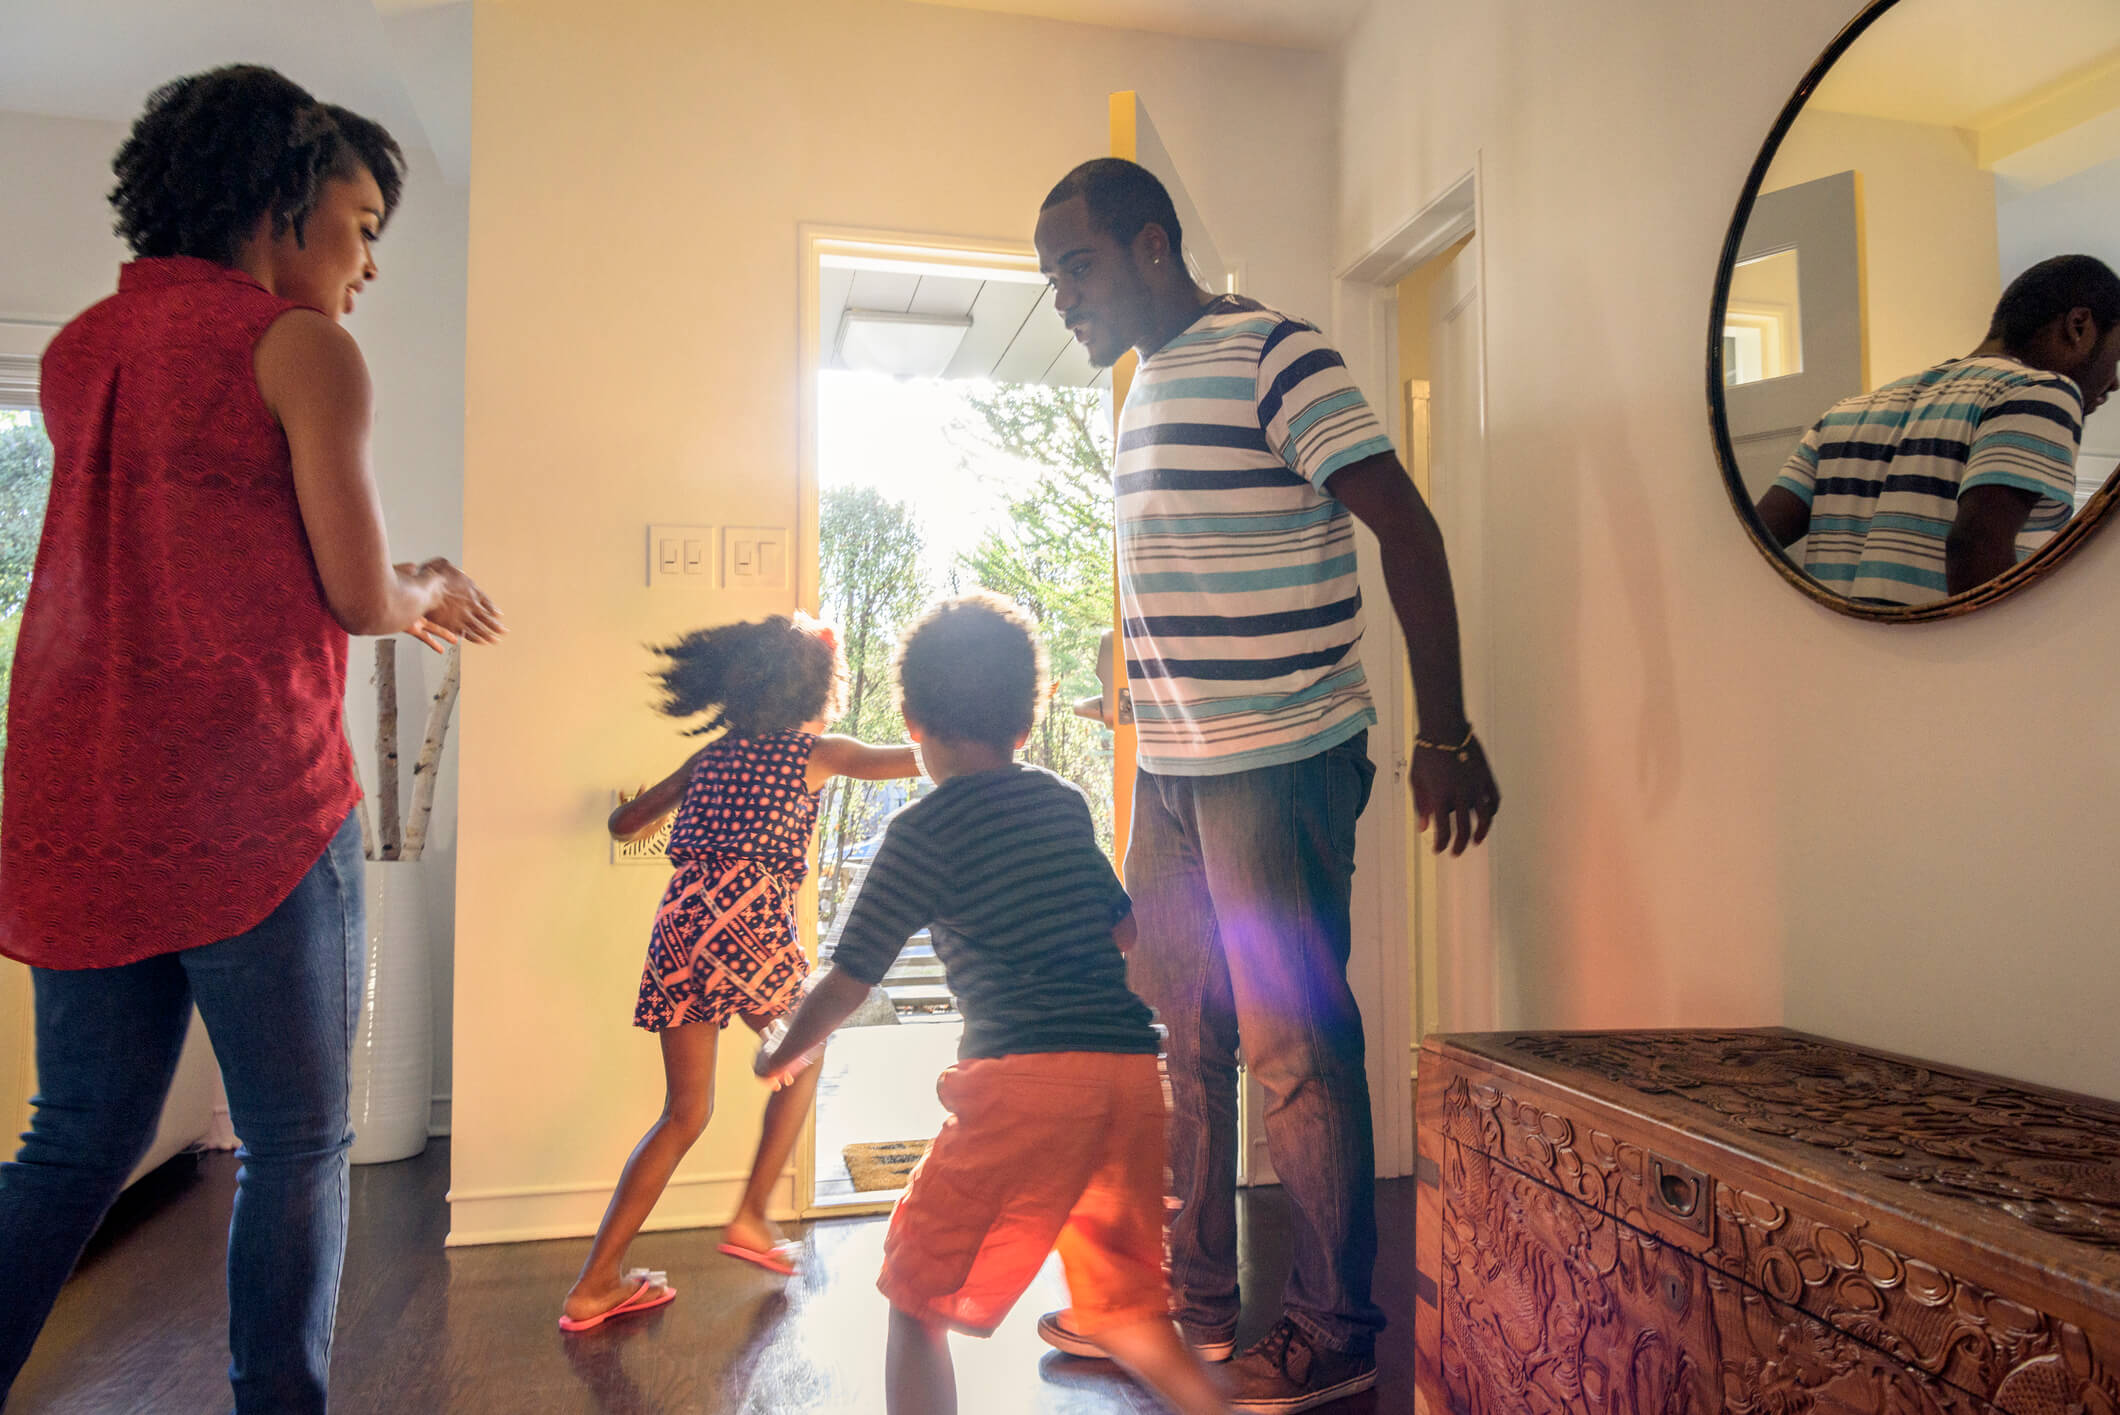 A father holds open the front door of a house as his family moves to go out the door